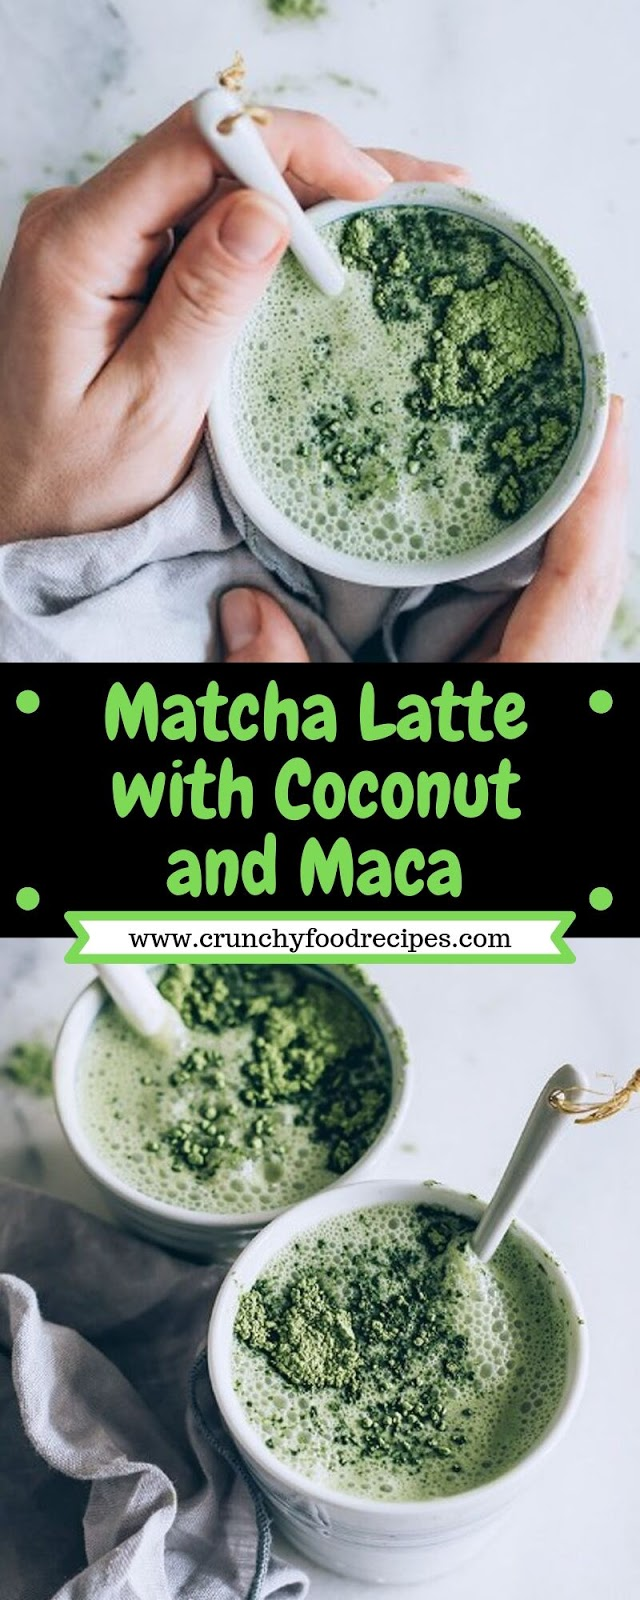 Matcha Latte with Coconut and Maca